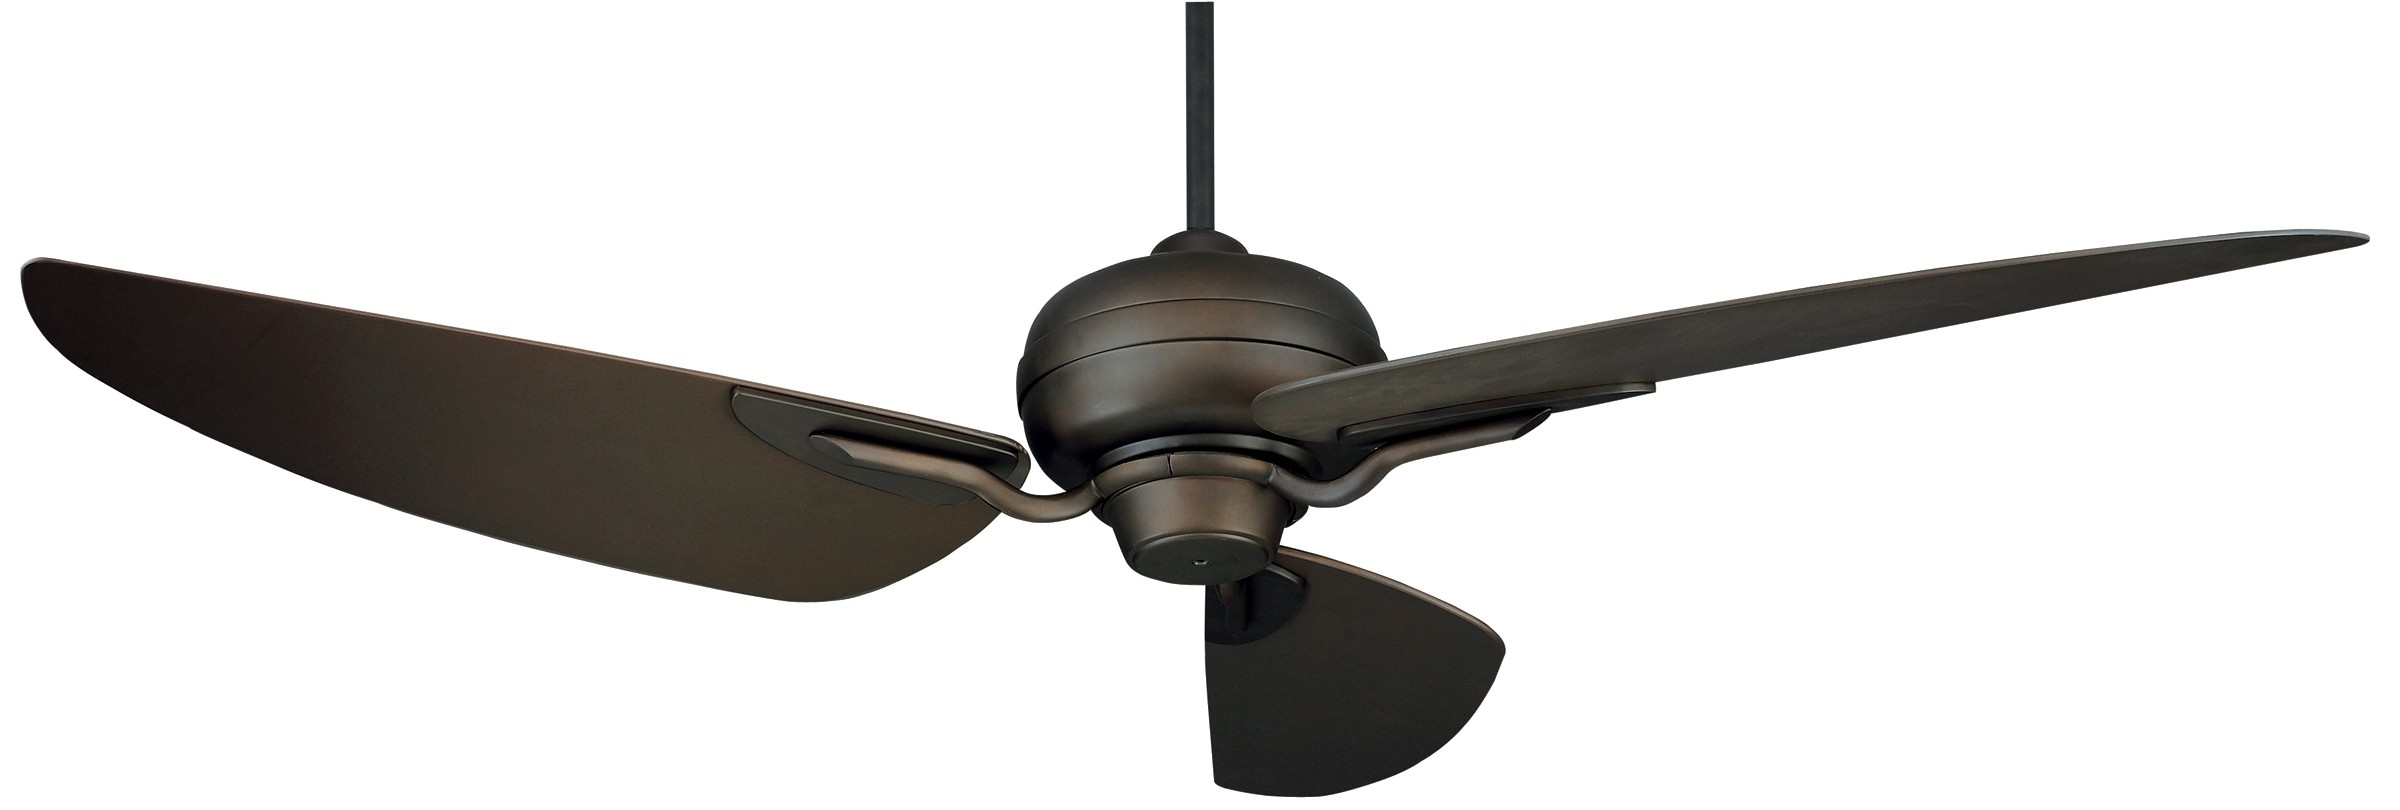 Popular Wet Rated Outdoor Ceiling Fans With Light Regarding Outdoor Fans Wet Rated – Photos House Interior And Fan (View 13 of 20)